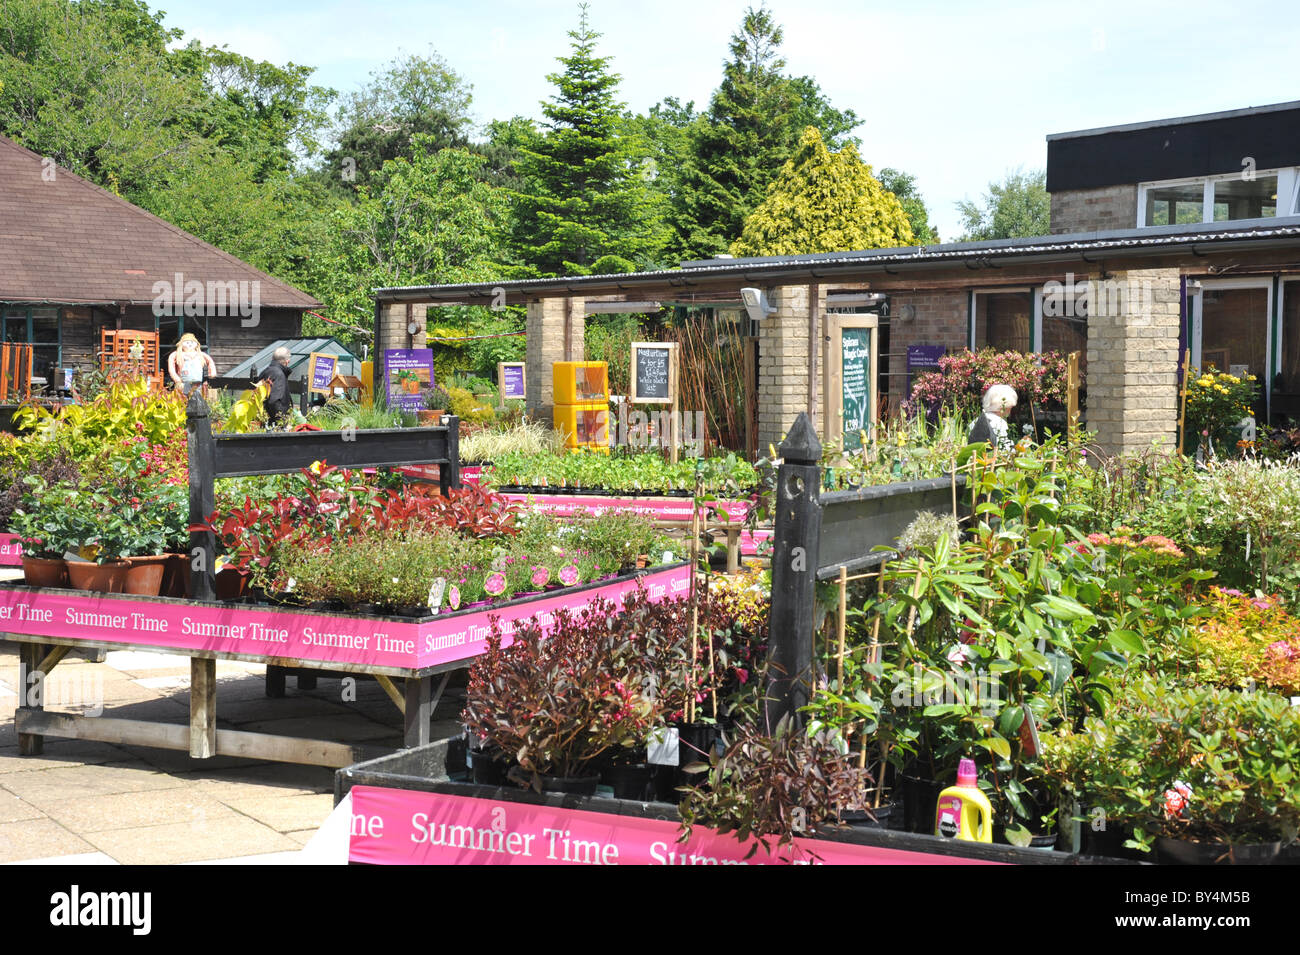 Pleasing Garden Centre  Shrubs And Bedding Plants Area  Uk Stock Photo  With Luxury Garden Centre  Shrubs And Bedding Plants Area  Uk With Adorable Alton Garden Centre Also Garden Trugs Wooden In Addition Liss Garden Machinery And Garden Open Days As Well As Victoria Gardens Central Park Additionally The Garden Of Eden Movie  From Alamycom With   Luxury Garden Centre  Shrubs And Bedding Plants Area  Uk Stock Photo  With Adorable Garden Centre  Shrubs And Bedding Plants Area  Uk And Pleasing Alton Garden Centre Also Garden Trugs Wooden In Addition Liss Garden Machinery From Alamycom